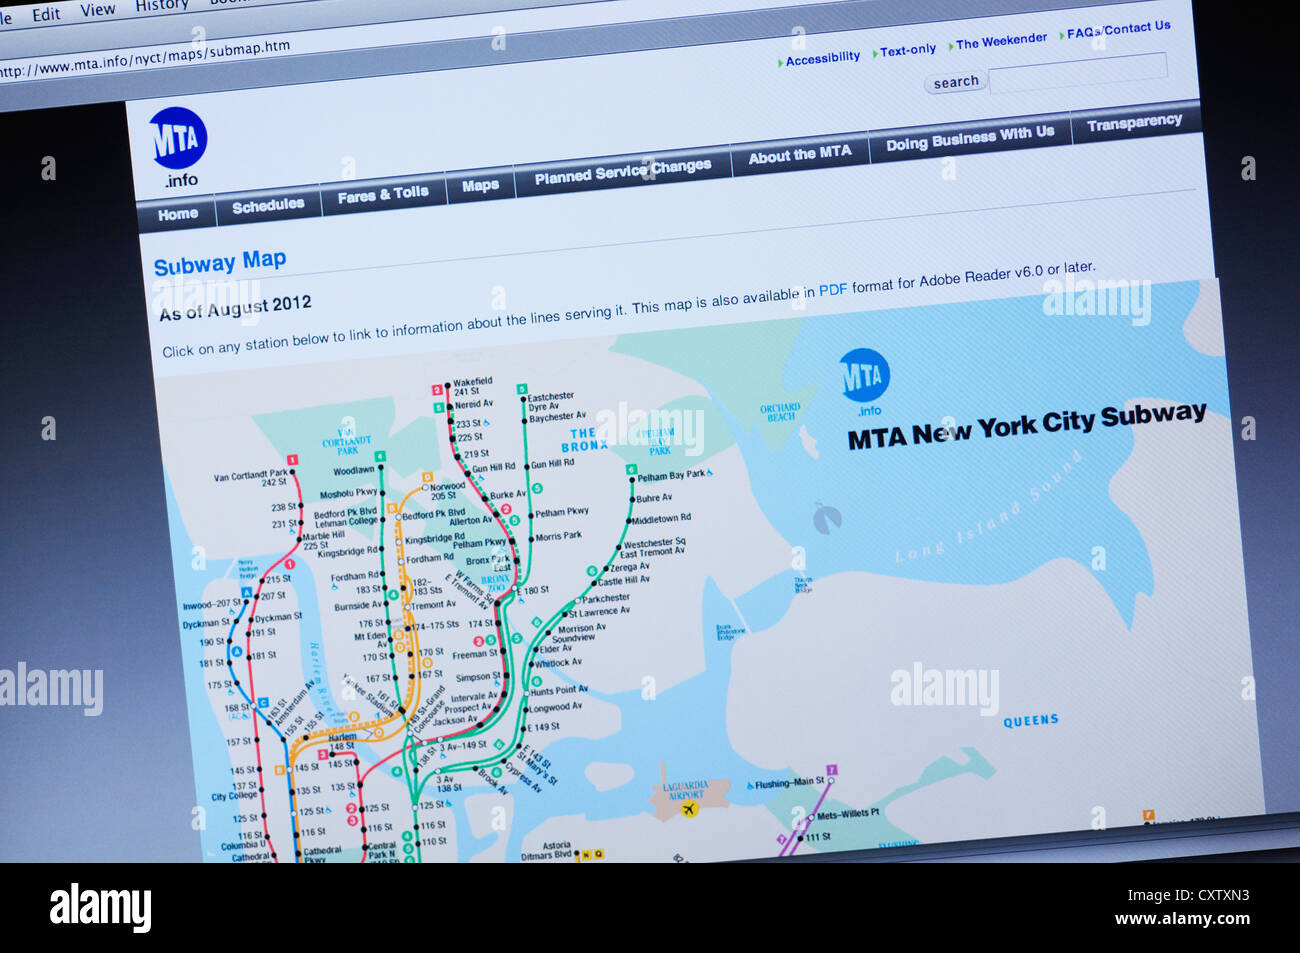 Subway Map 137 Hudson Street.Nyc Subway Map Stock Photos Nyc Subway Map Stock Images Alamy